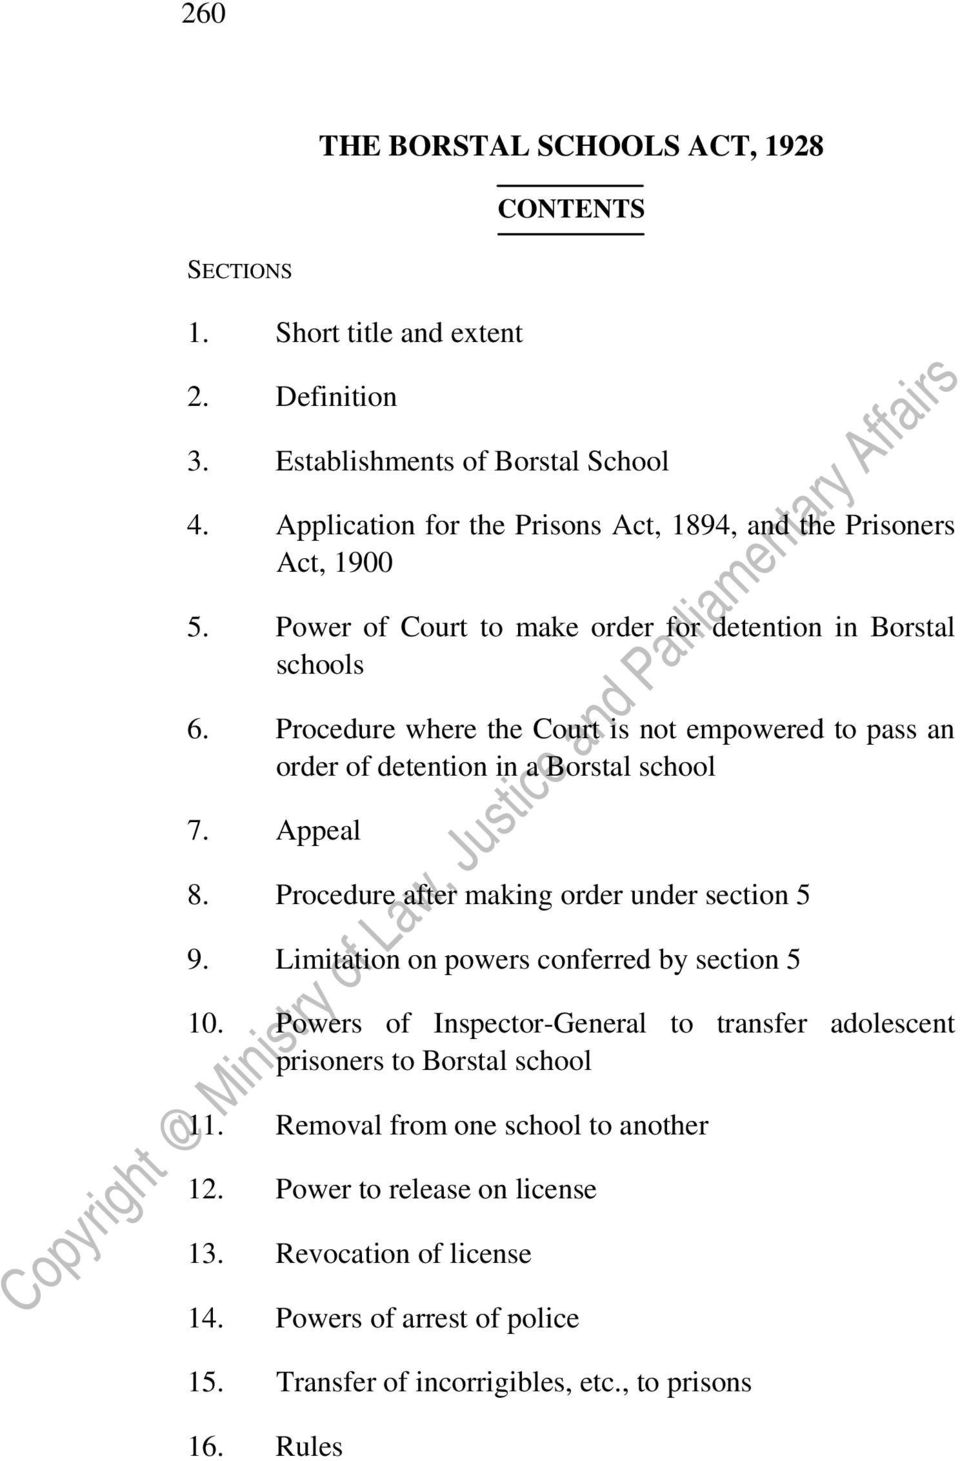 Procedure where the Court is not empowered to pass an order of detention in a Borstal school 7. Appeal 8. Procedure after making order under section 5 9.